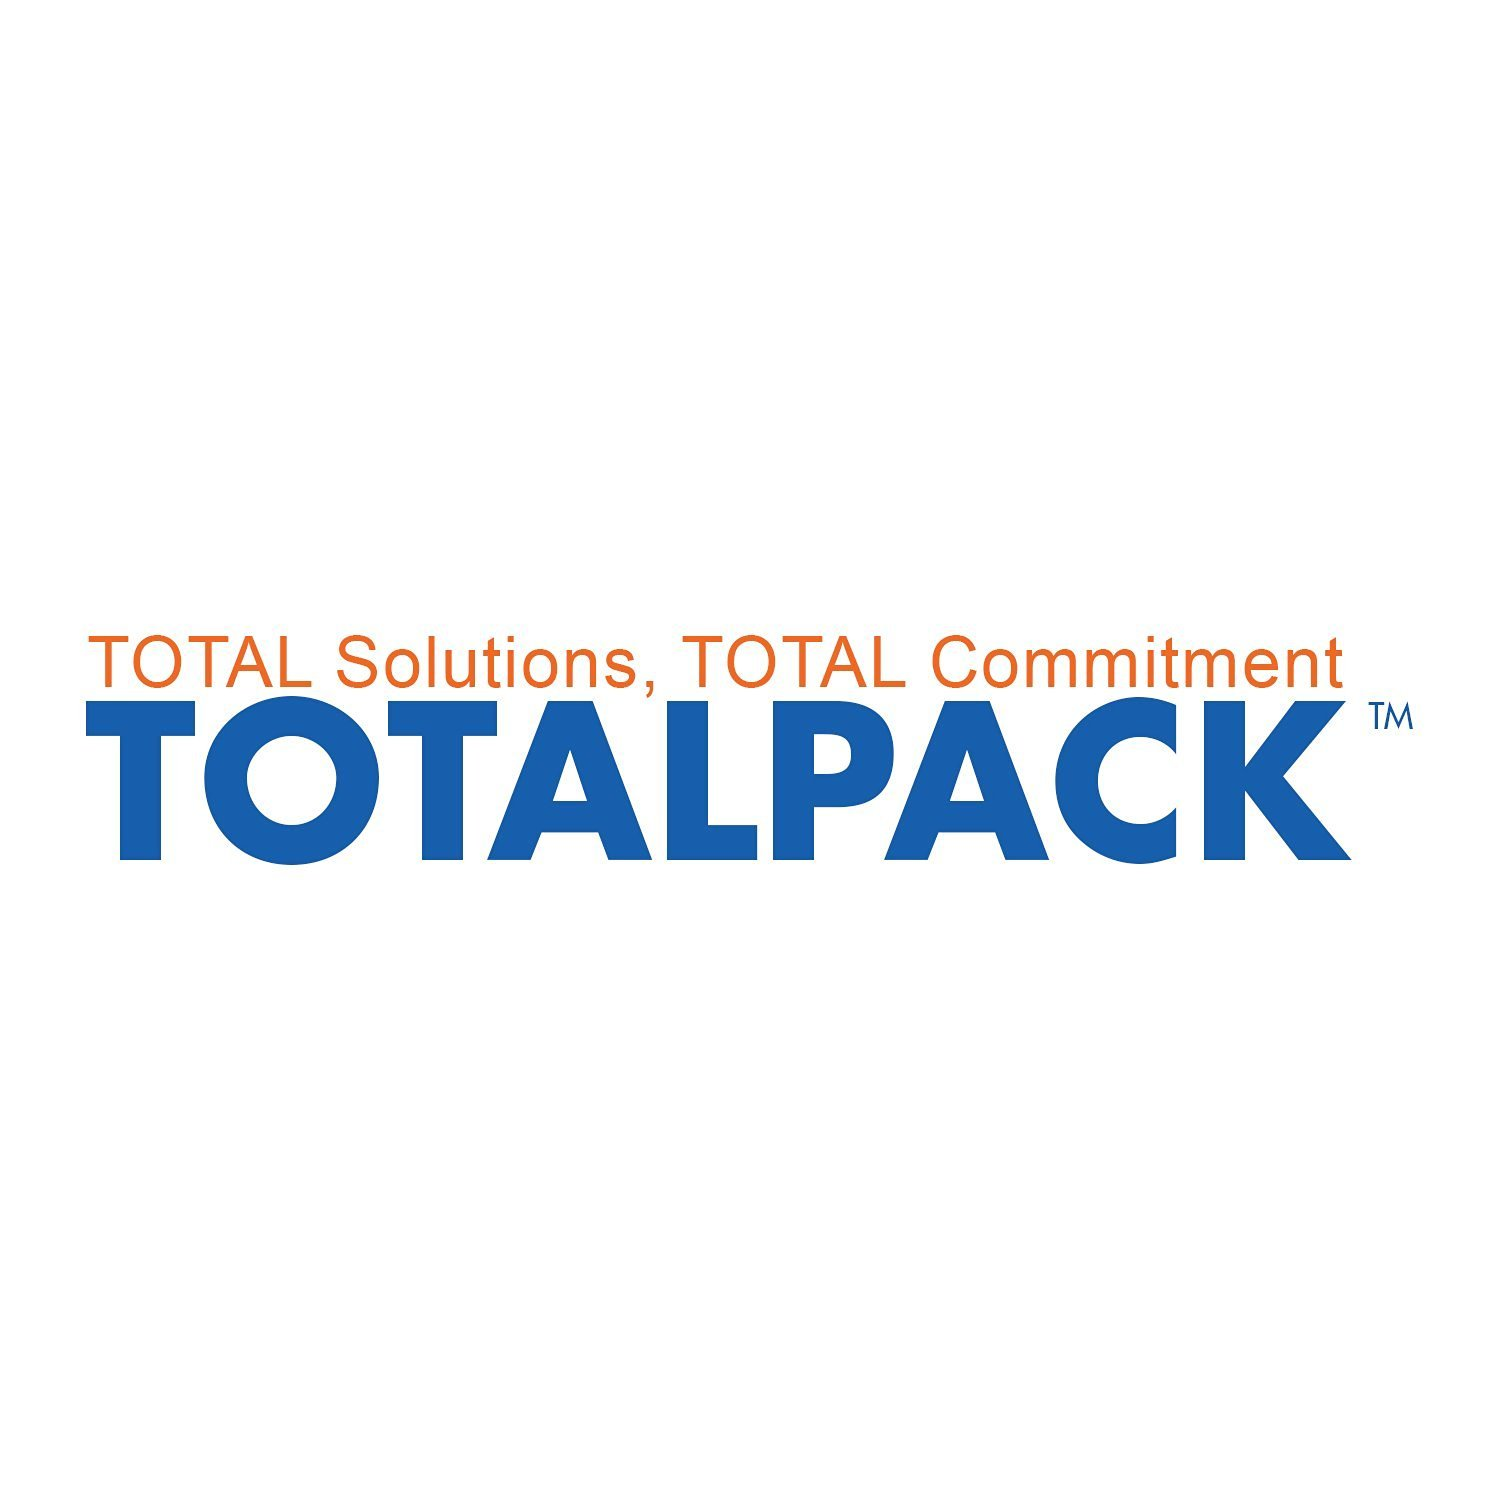 TOTALPACK - 48'' x 60''- Military-Strength Sandbags, Waterproof Polypropylene Tightly-Woven Sand Bags, Tear-Resistant Bags With Ties, Maximum UVI Protection, USA-Made Bags For Barriers, (100) White Bags by Totalpack